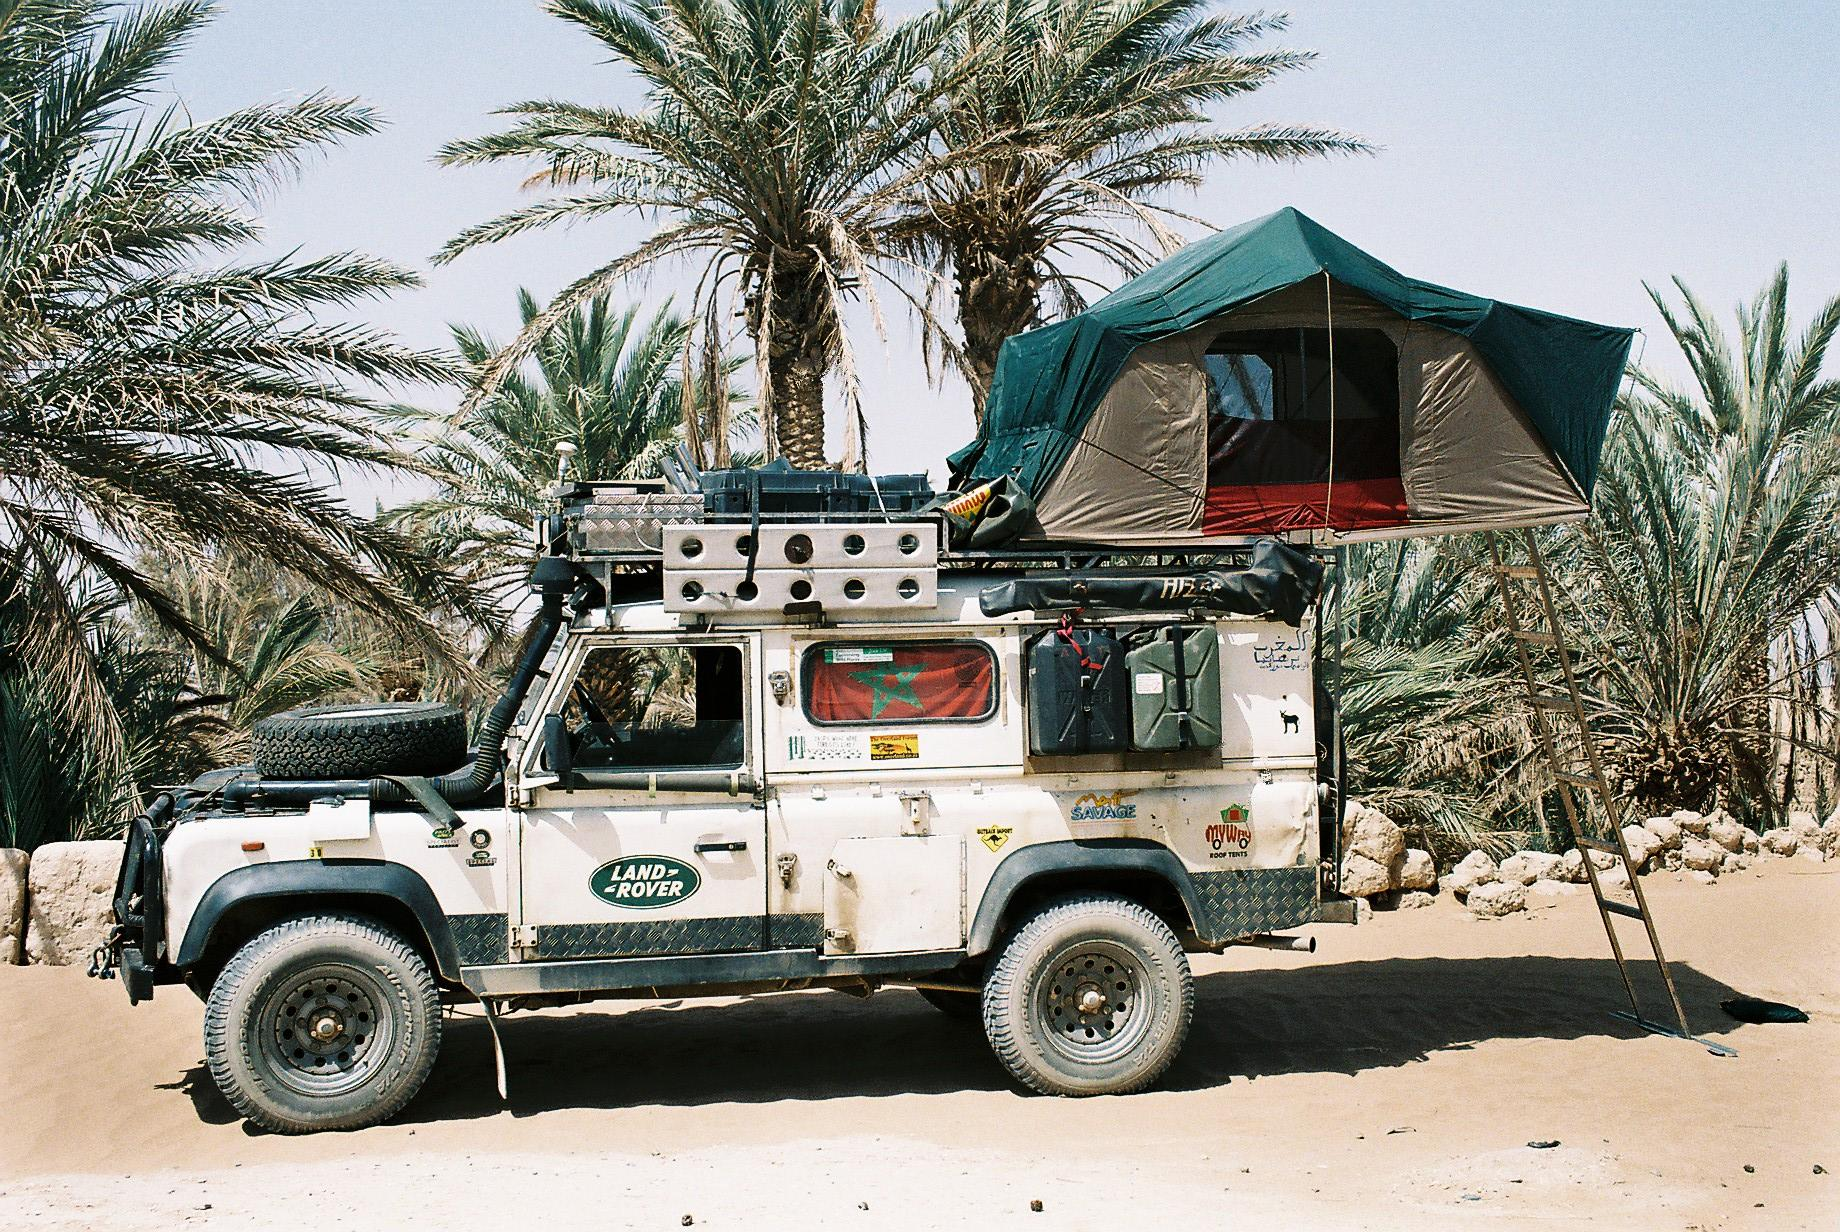 RT @SamWatson__: Camped up in an oasis, southern #Morocco @LandRover_UK #hibernot #overland http://t.co/7kiH5v5iDO